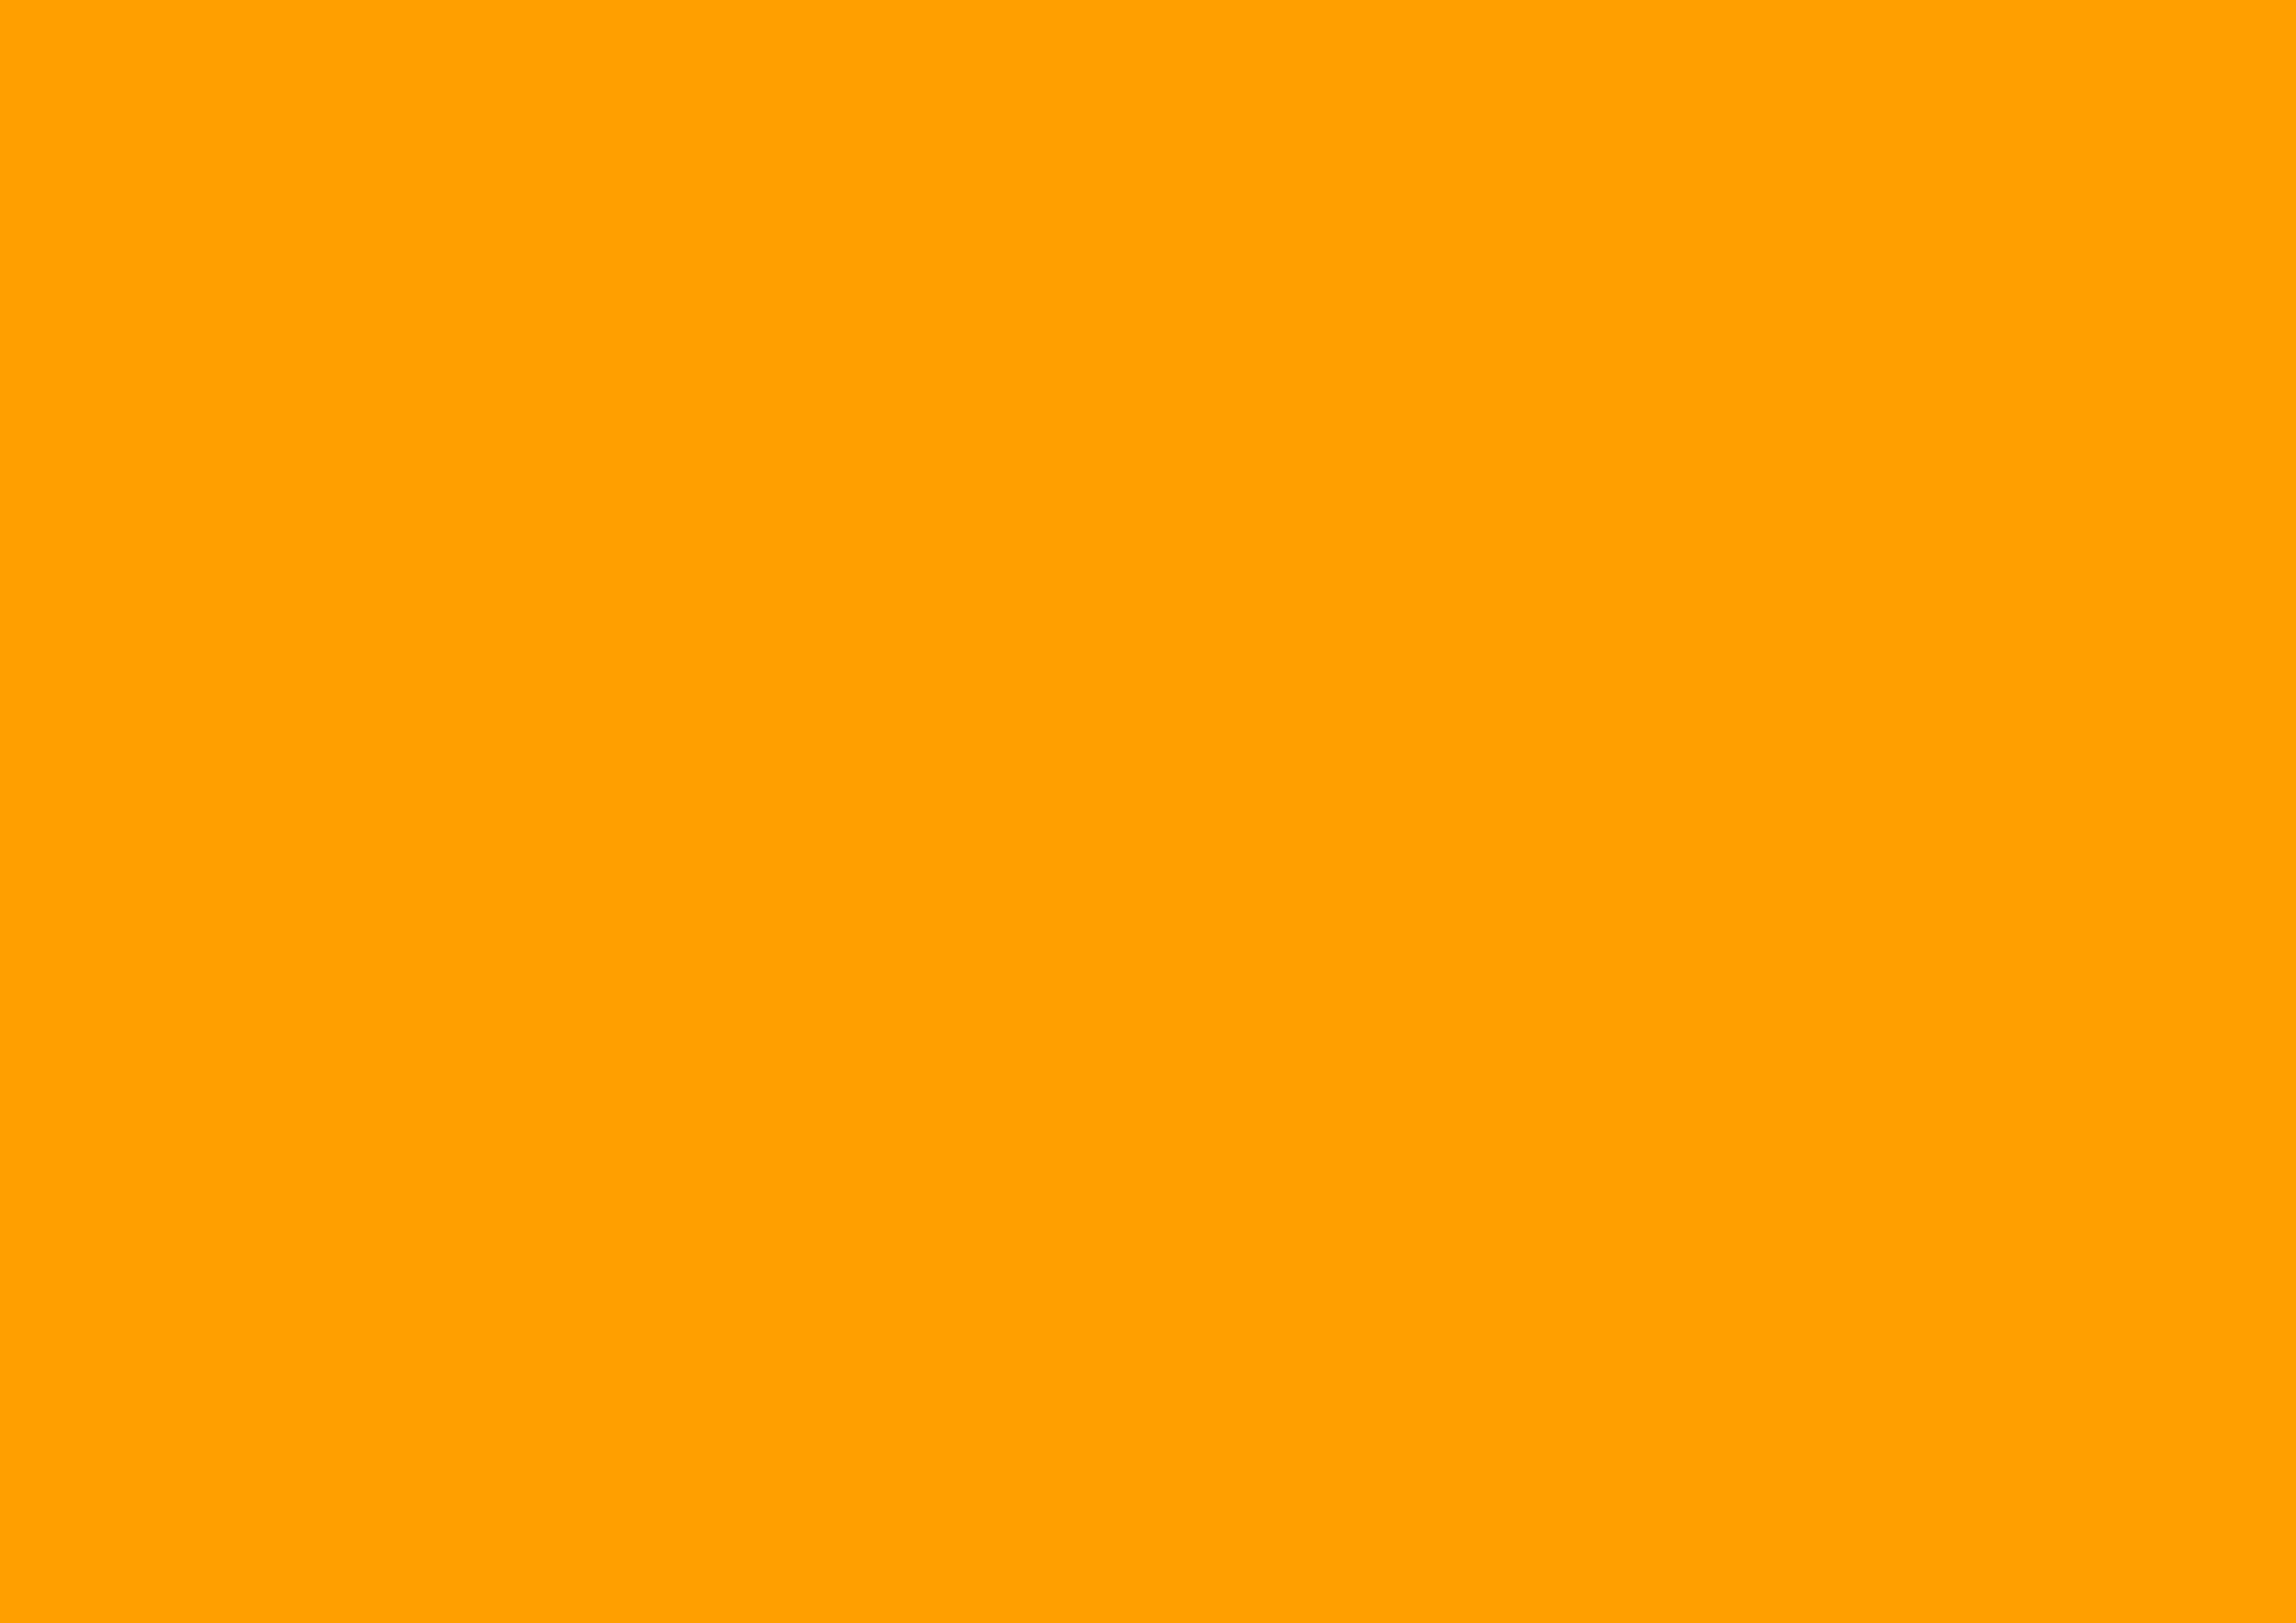 3508x2480 Orange Peel Solid Color Background